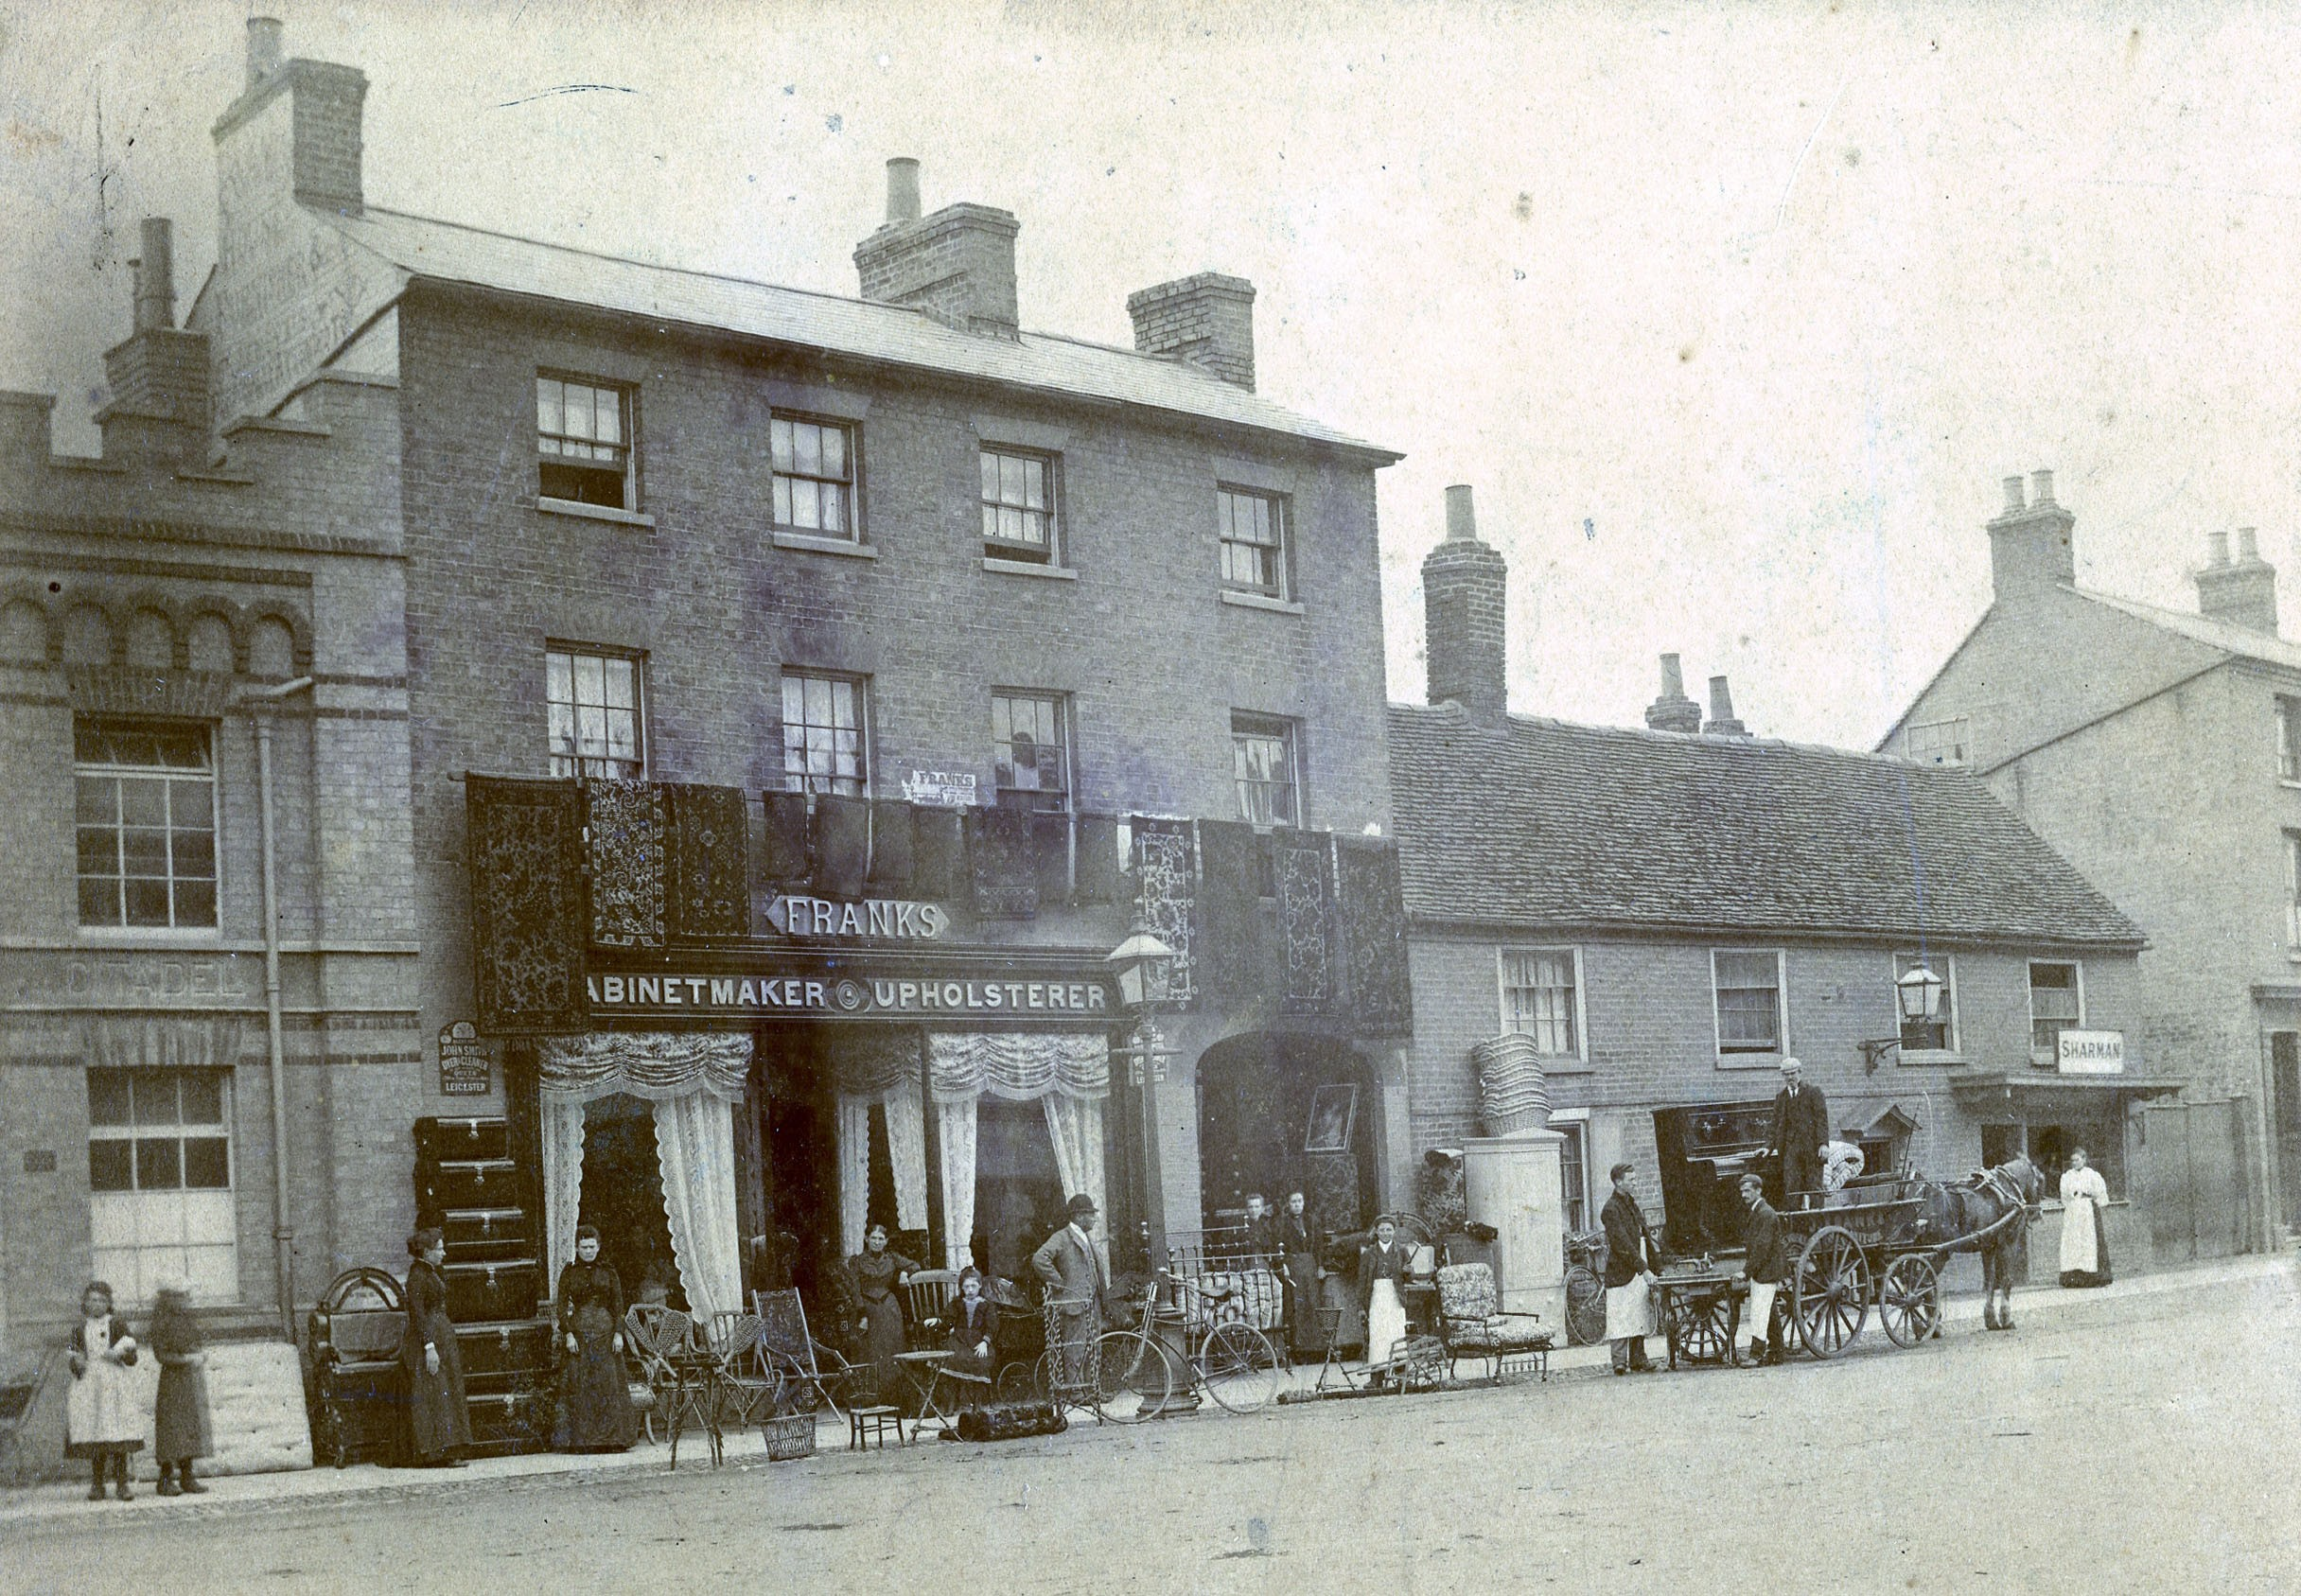 Franks Furniture Shop in 1900 in St Neots High Street High